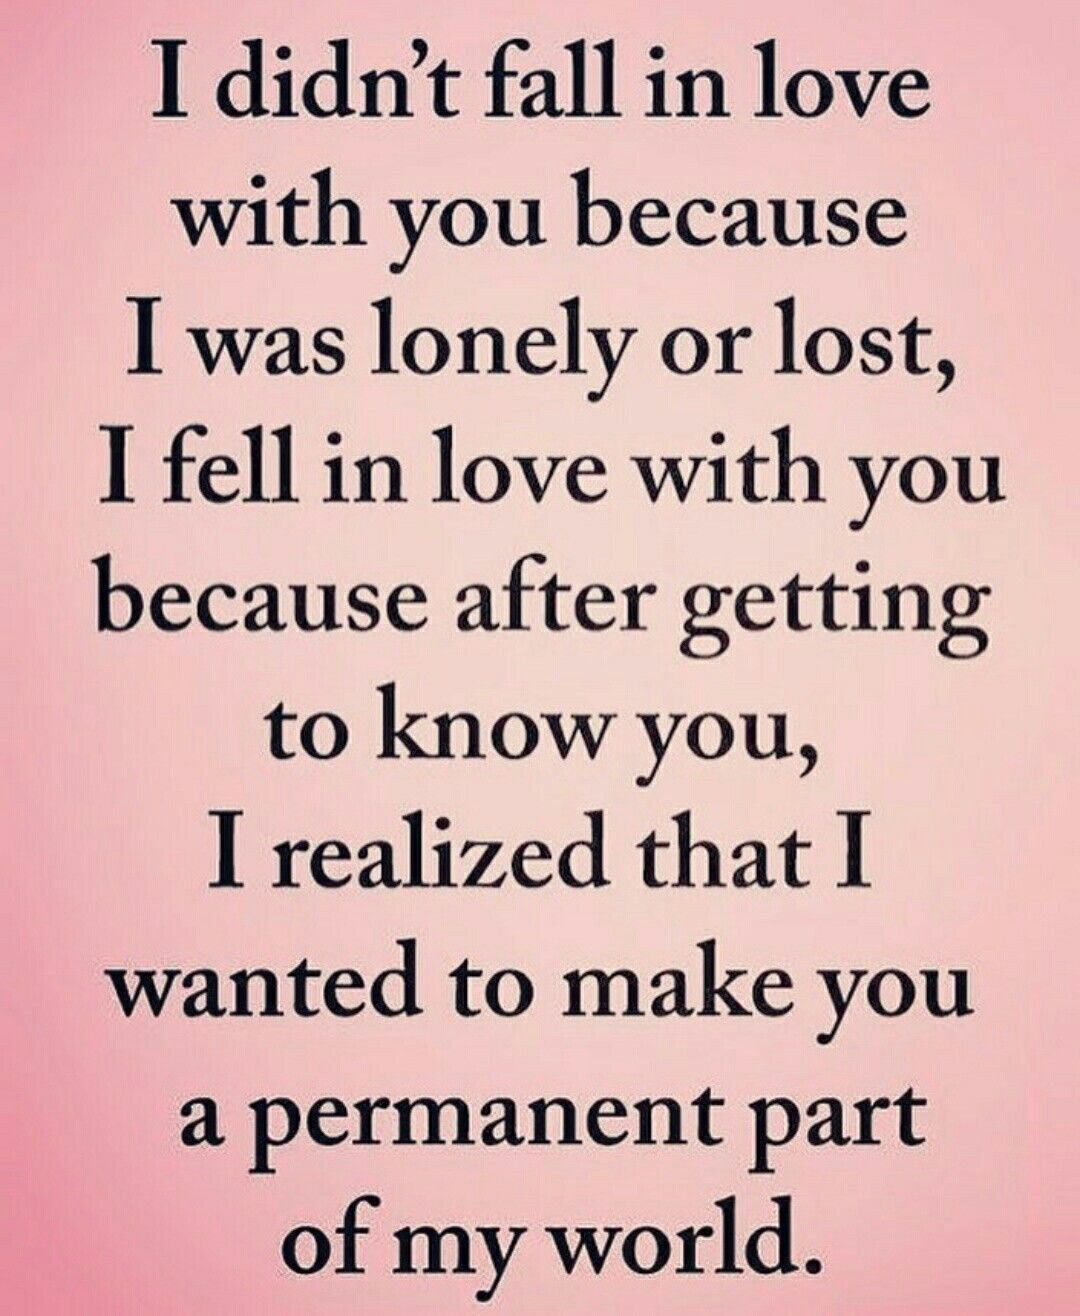 Best Love Quotes For Him Her Love Quotes In 2020 With Images